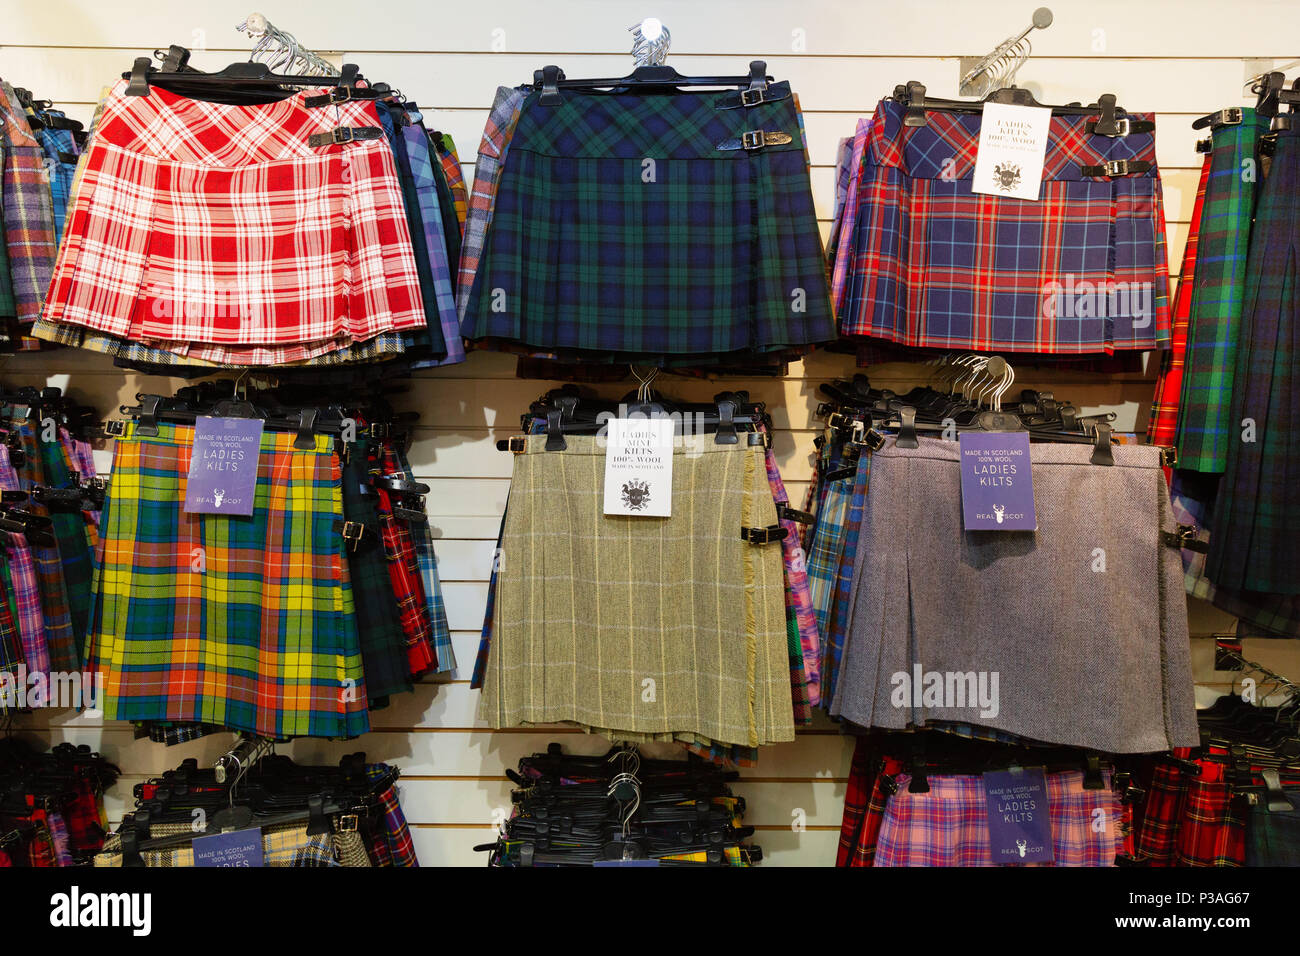 Tartan kilt skirts for women on sale in a kilt shop, Edinburgh, Scotland UK - Stock Image